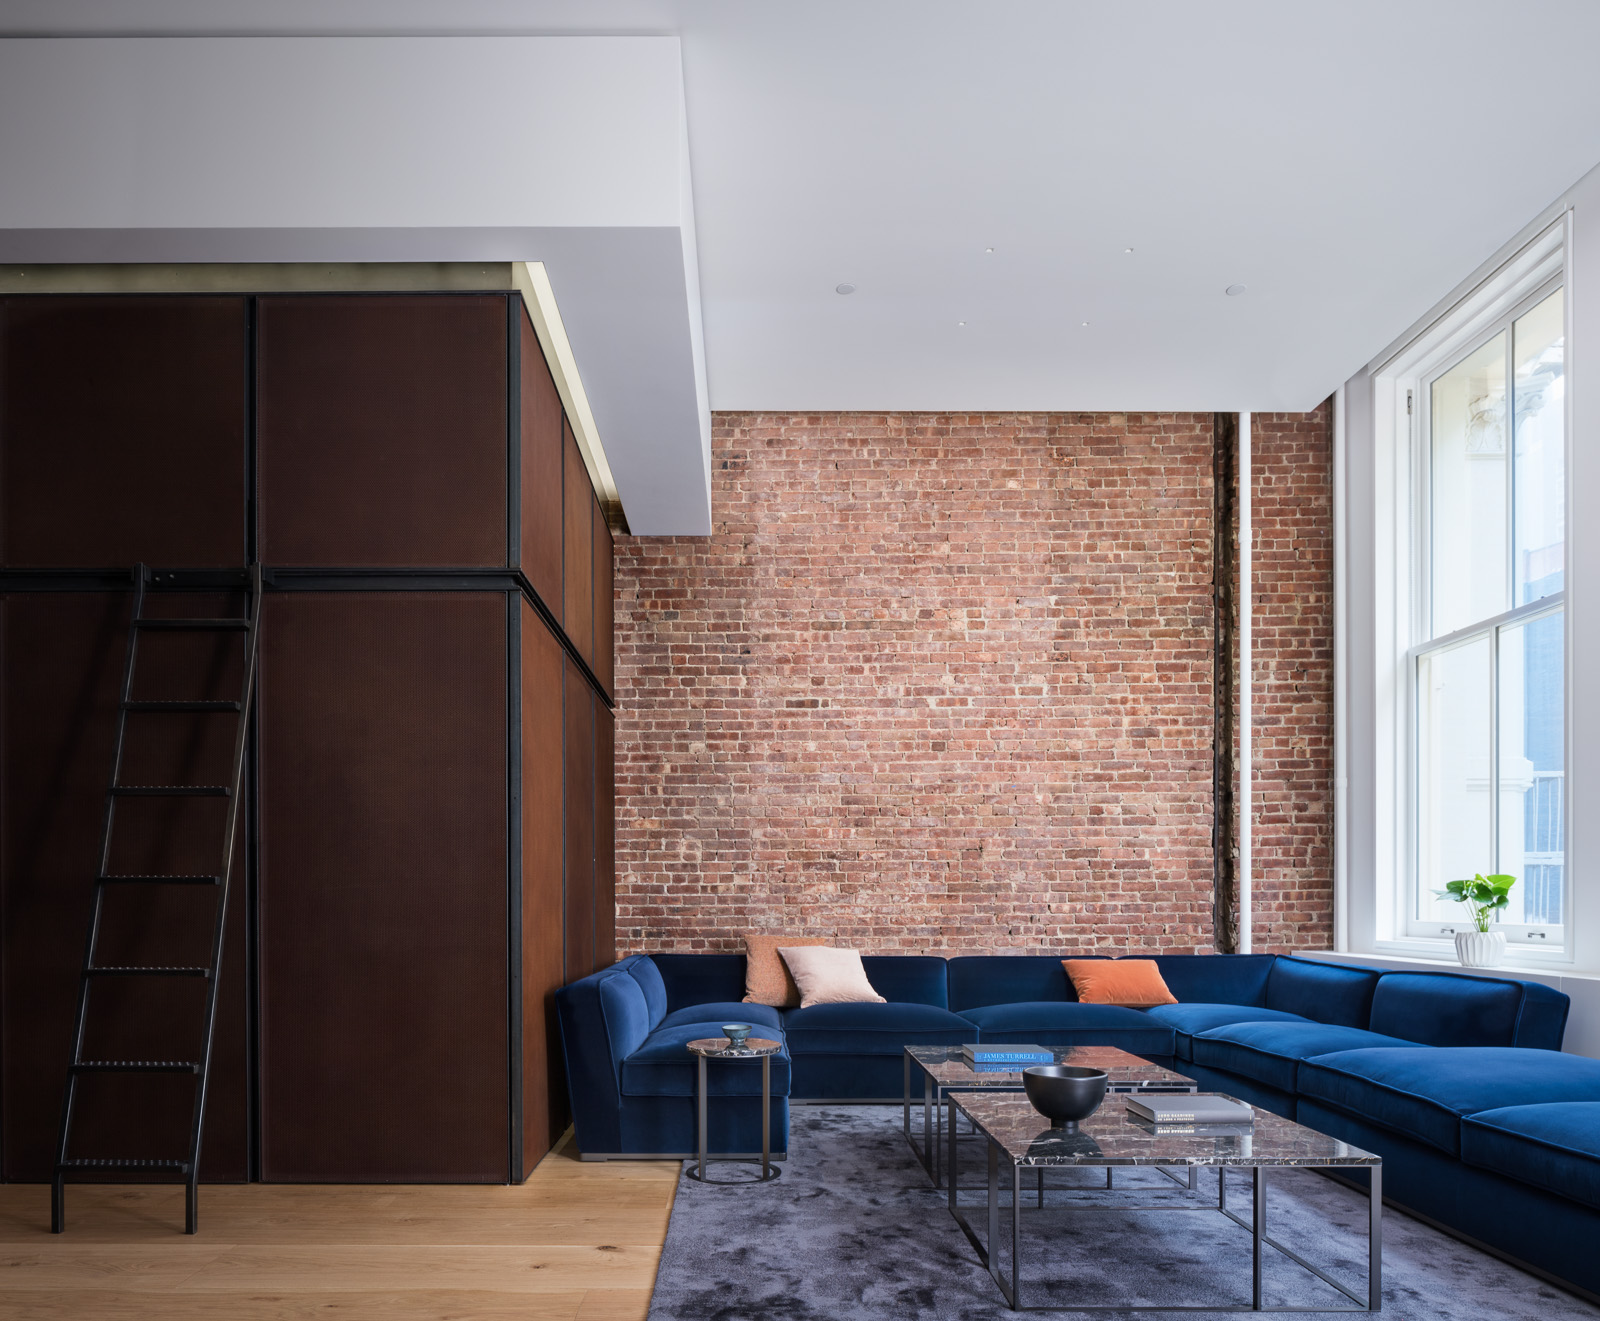 We created a knife edge cove detail that wraps the North, South and West walls. The pocket conceals linear LED grazers that highlight the exposed brick, window treatments and perforated corten steel feature walls.